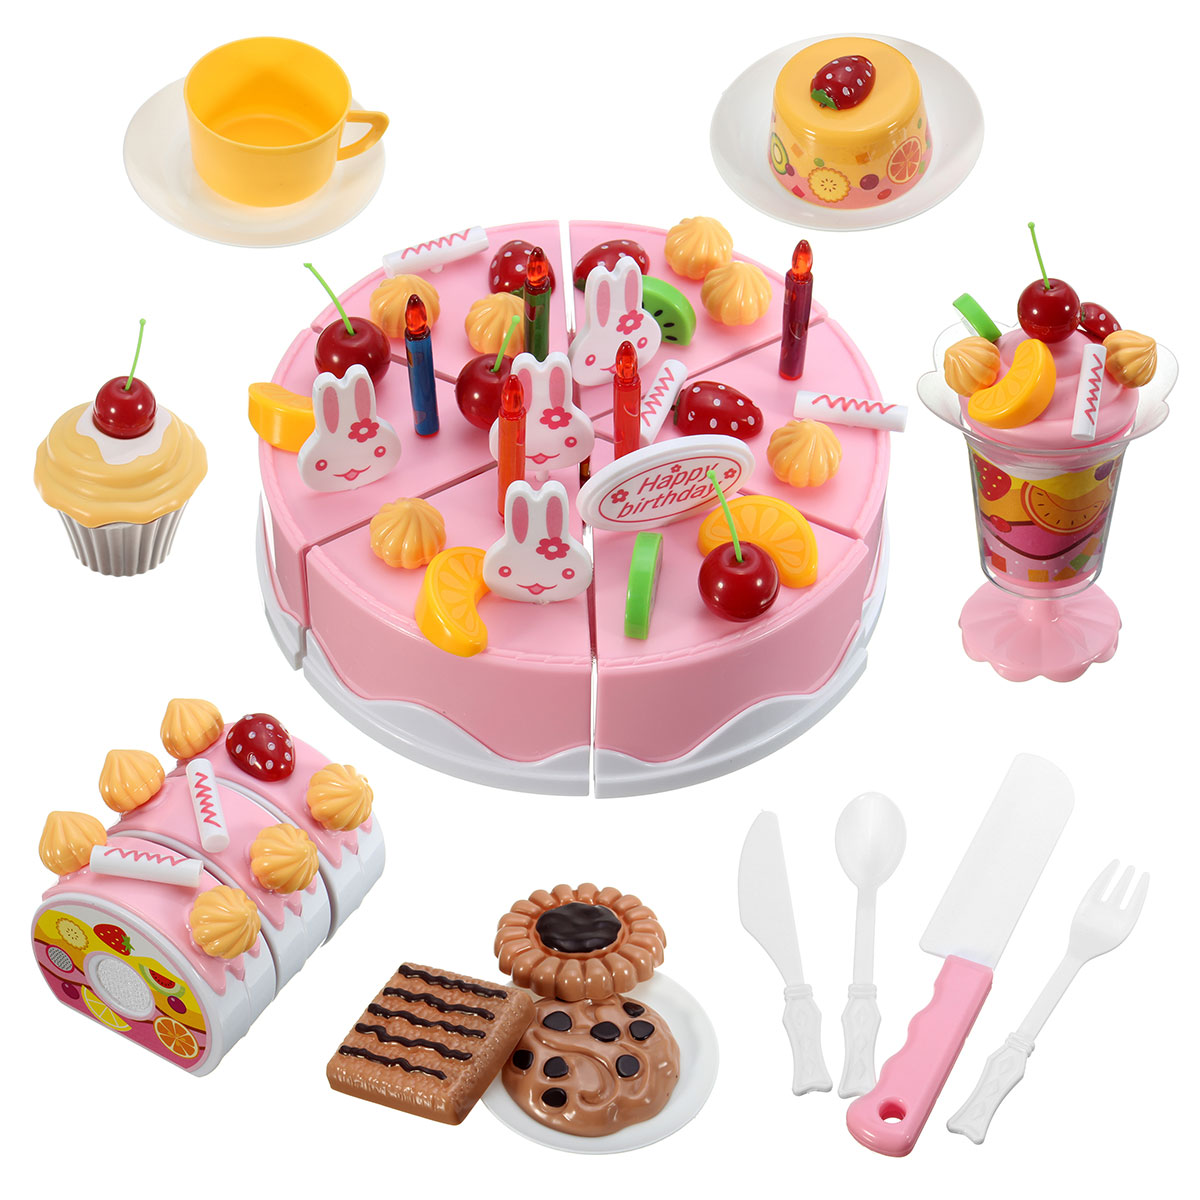 Buy 7DIY Fruitcake Cake Sweet Drink Kids Role Play Kitchen Toy Gift ABS Plastic